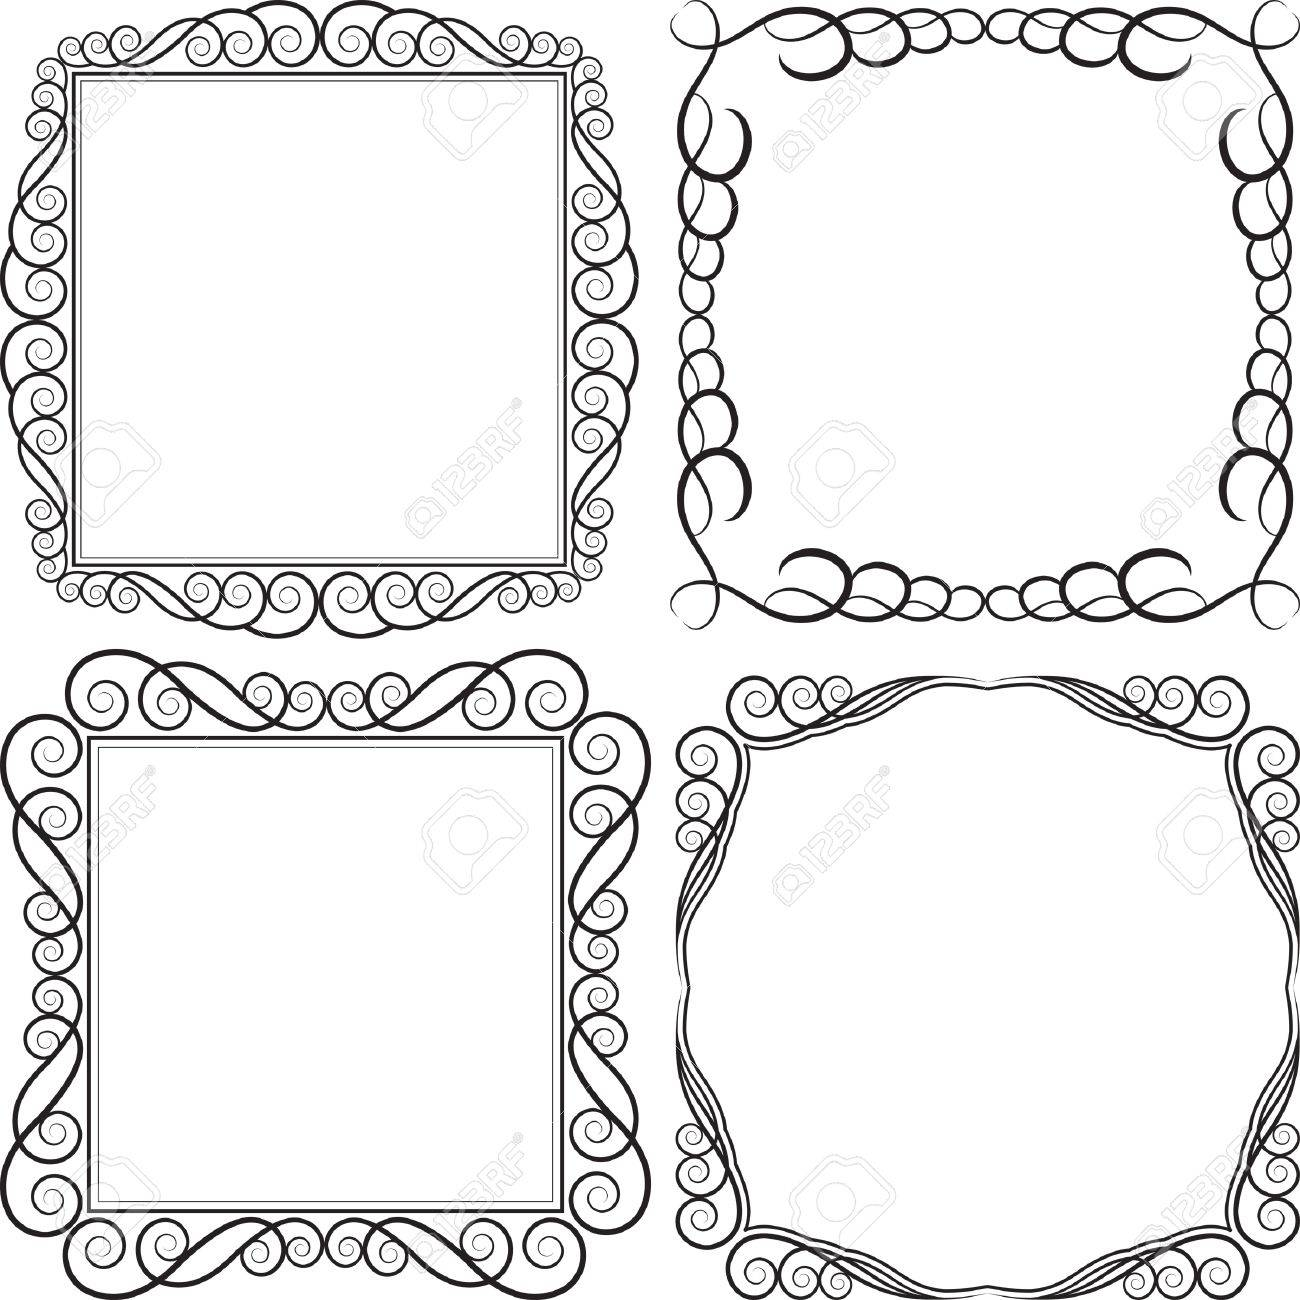 square frames vector illustration stock vector 14205807